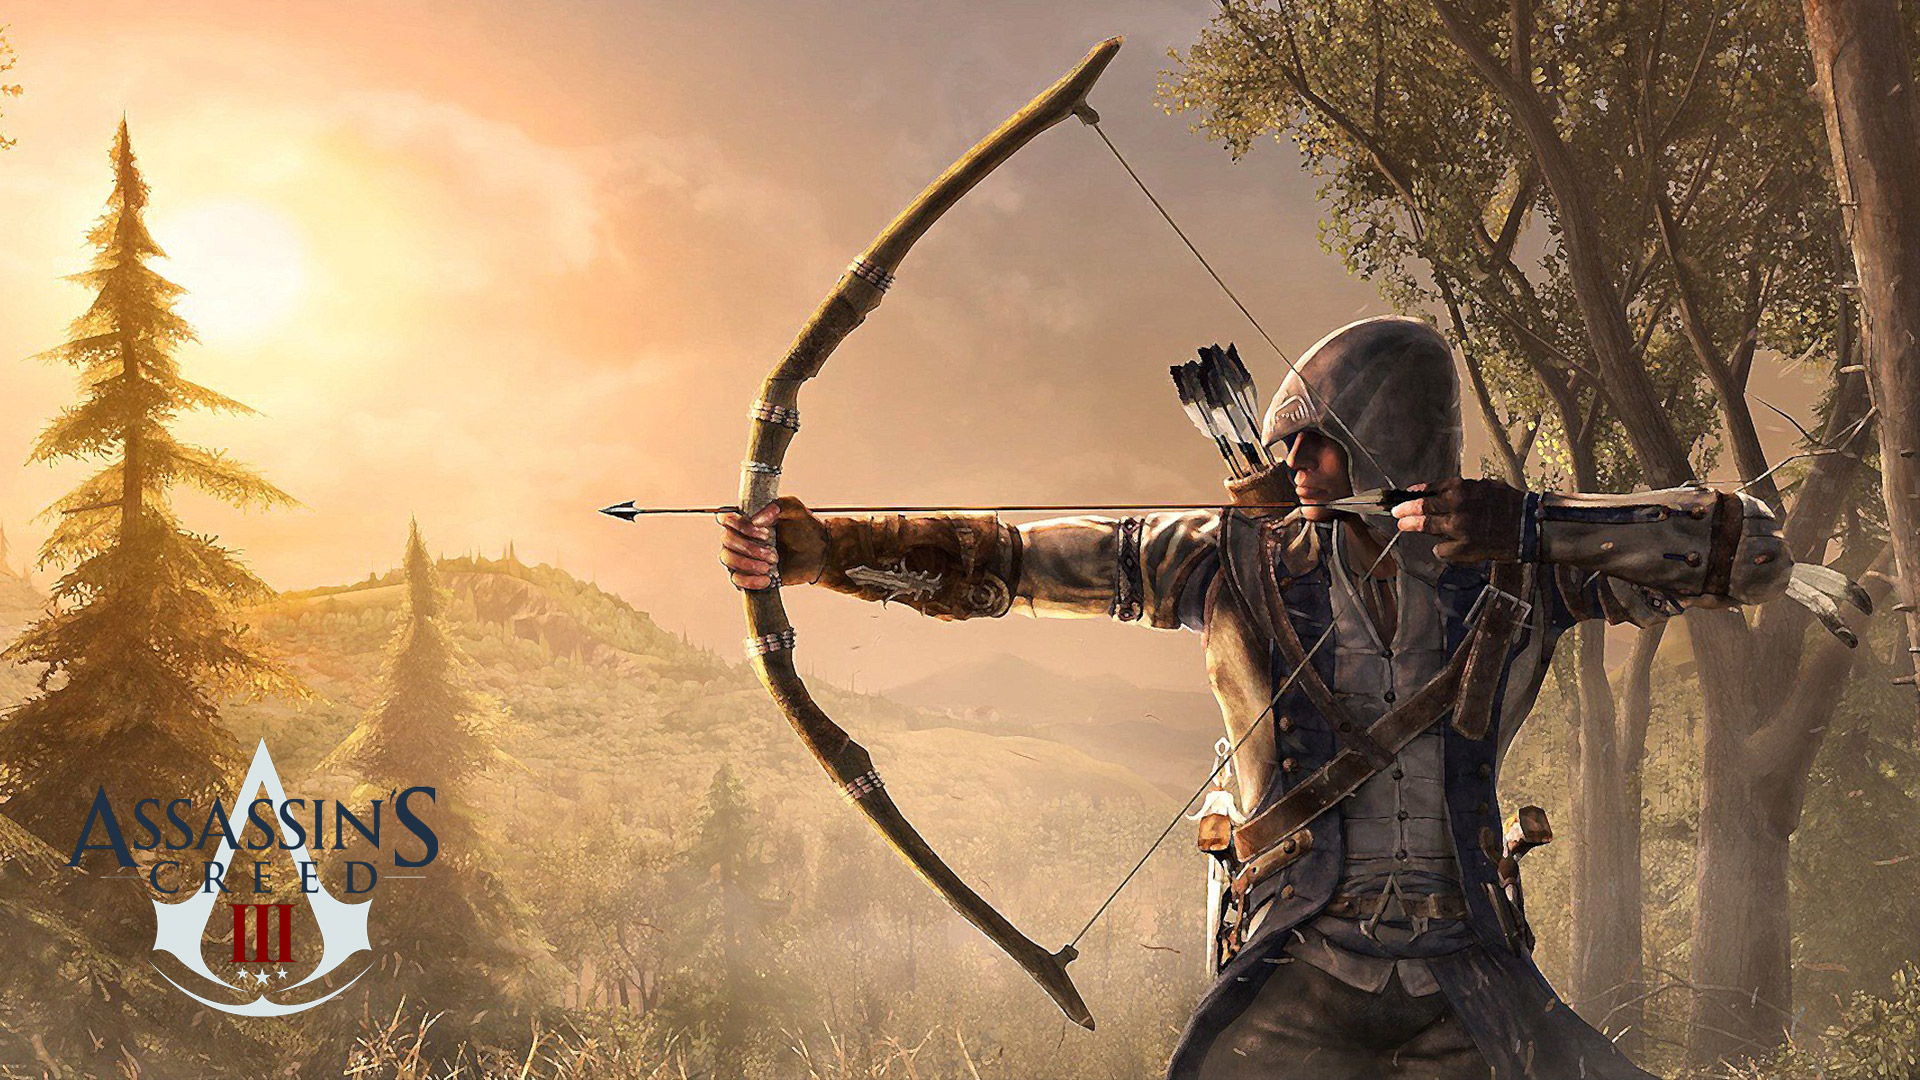 Wallpapers Assassins Creed III   Geekeries   Back to the GEEK 1920x1080